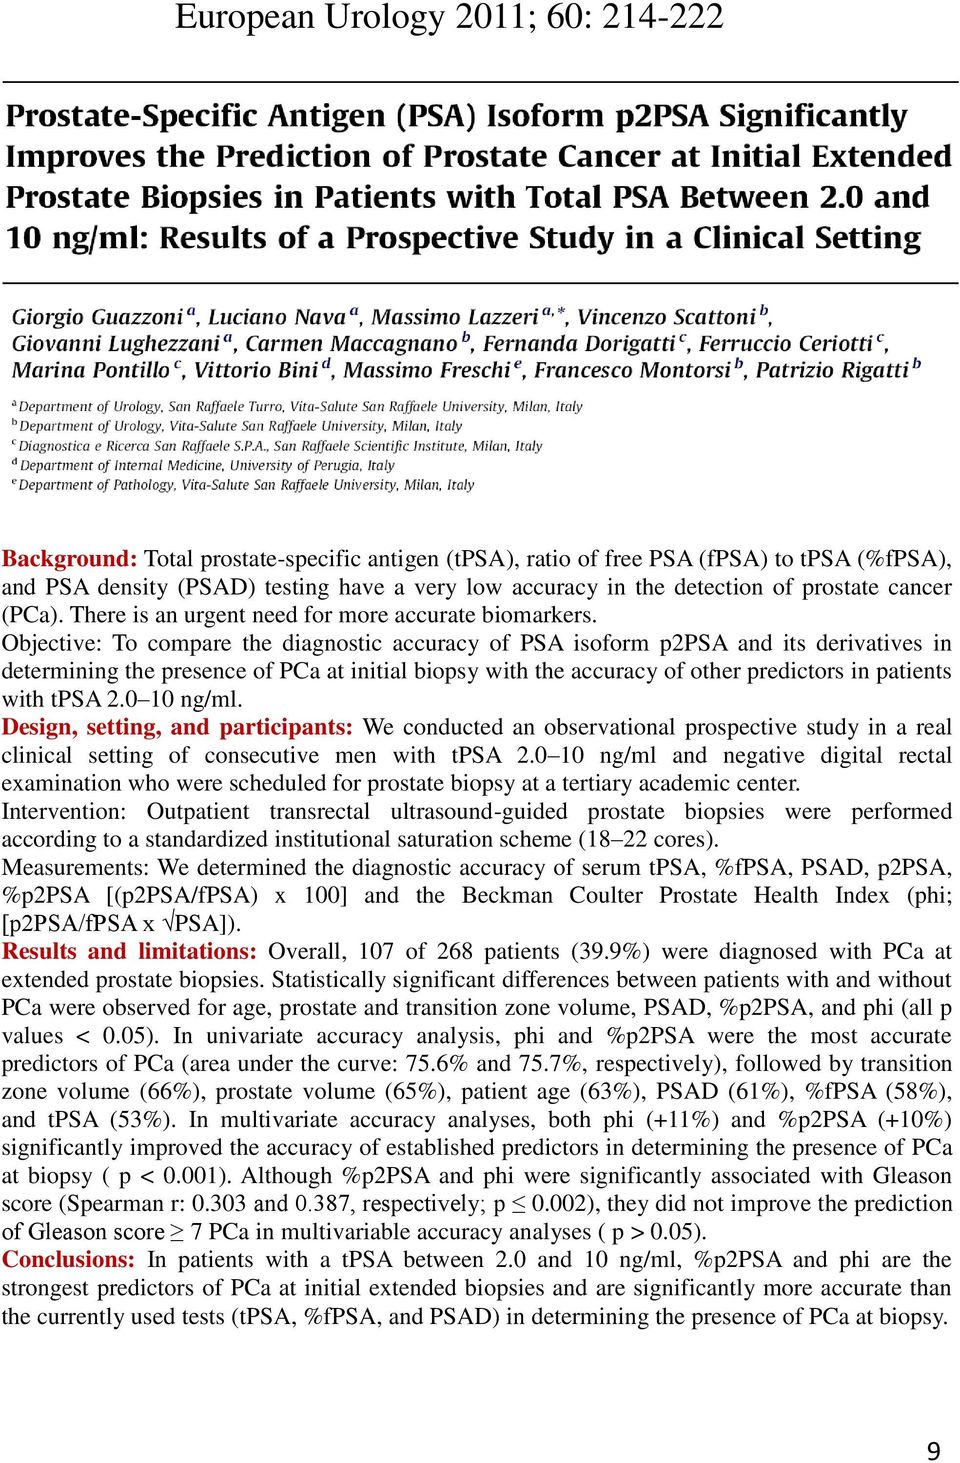 Objective: To compare the diagnostic accuracy of PSA isoform p2psa and its derivatives in determining the presence of PCa at initial biopsy with the accuracy of other predictors in patients with tpsa